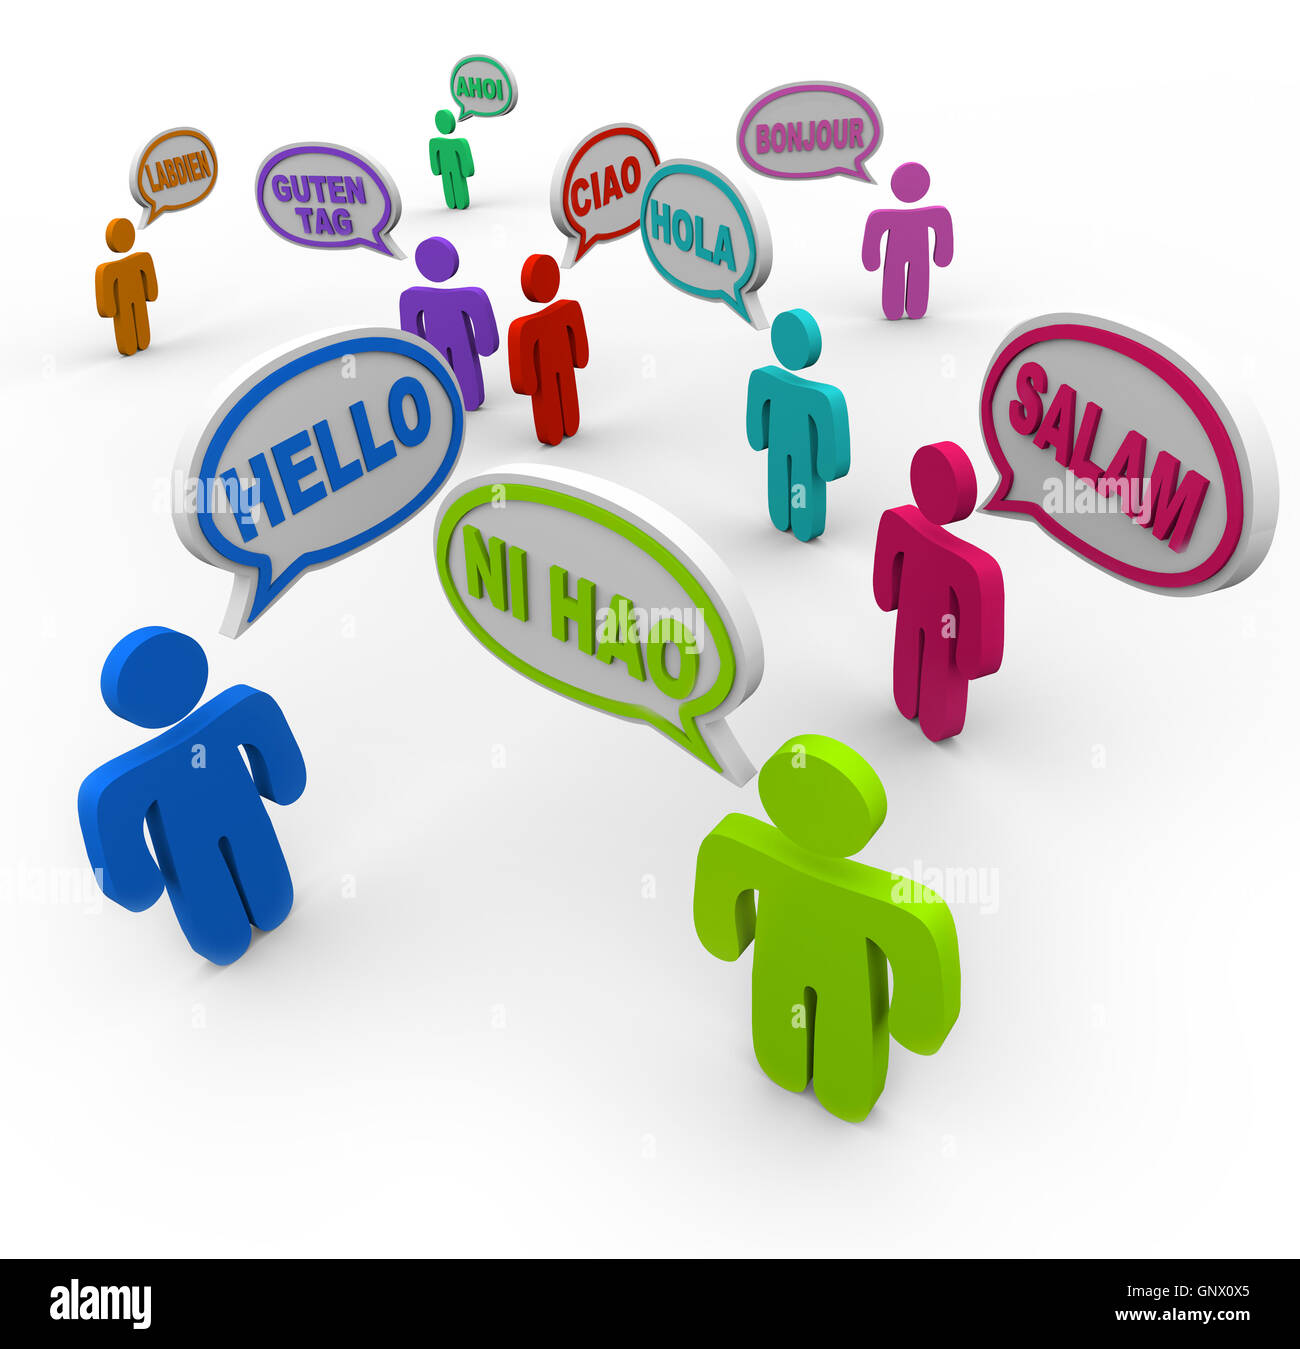 Hello in Different International Languages Greeting People - Stock Image